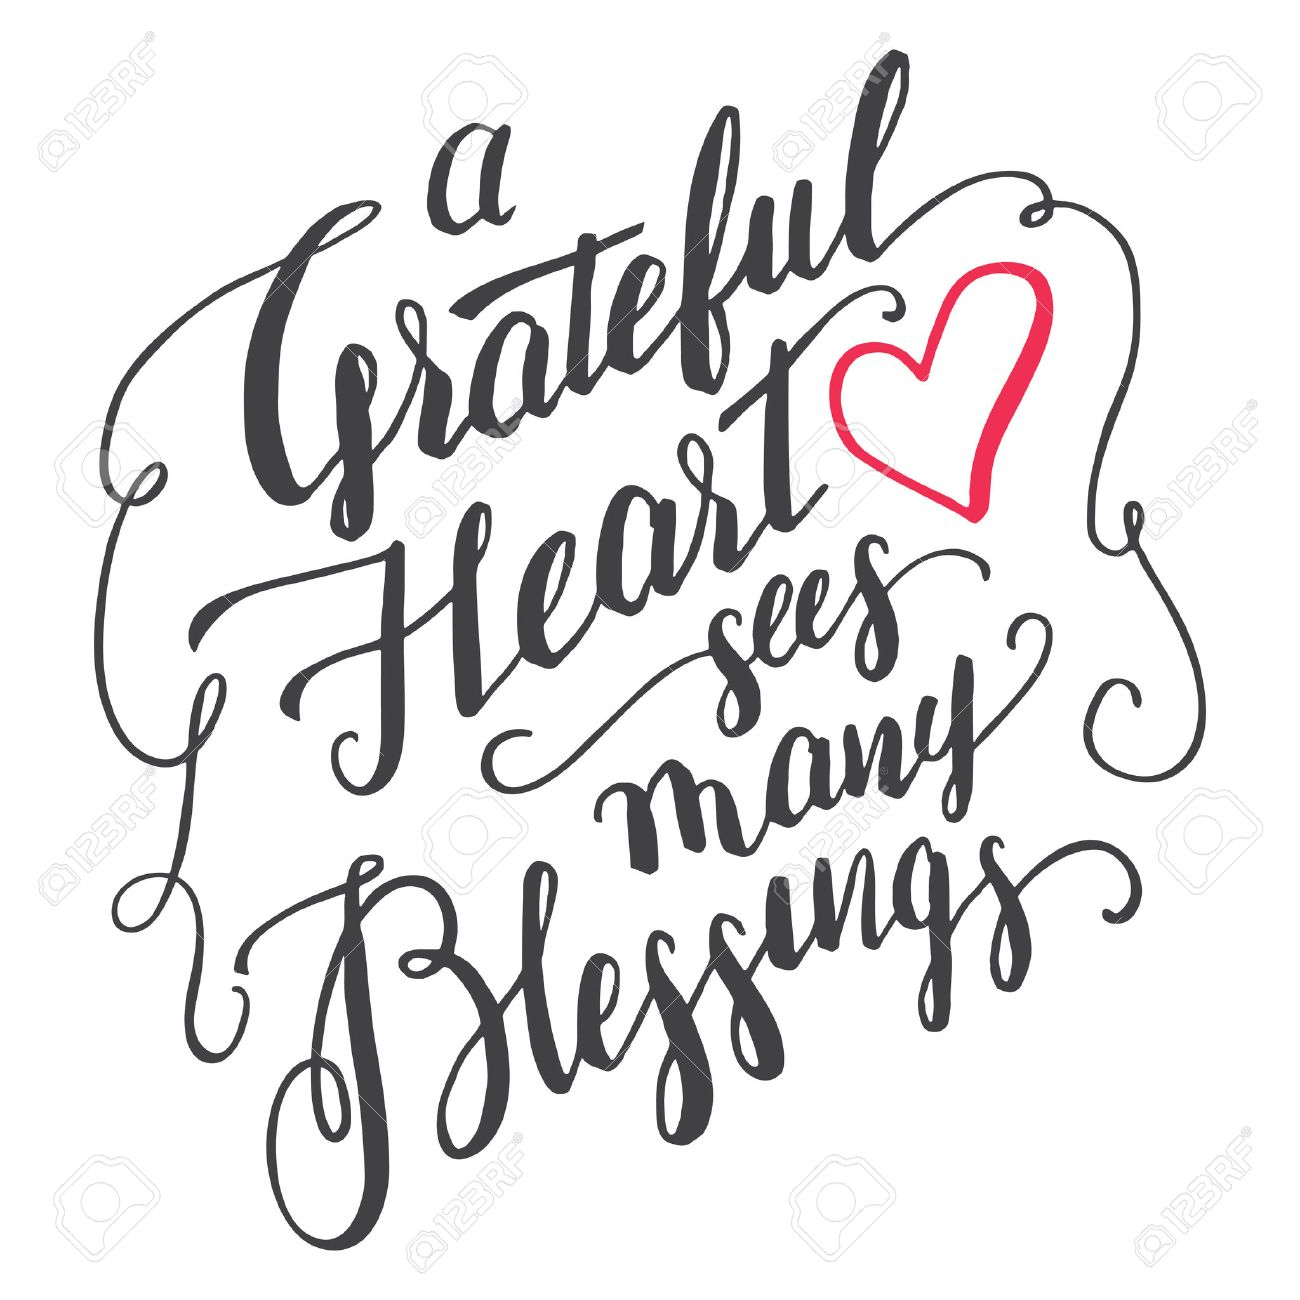 A Grateful Heart Sees Many Blessings. Gratitude Brush Calligraphy Quote For  Greeting Cards And Posters